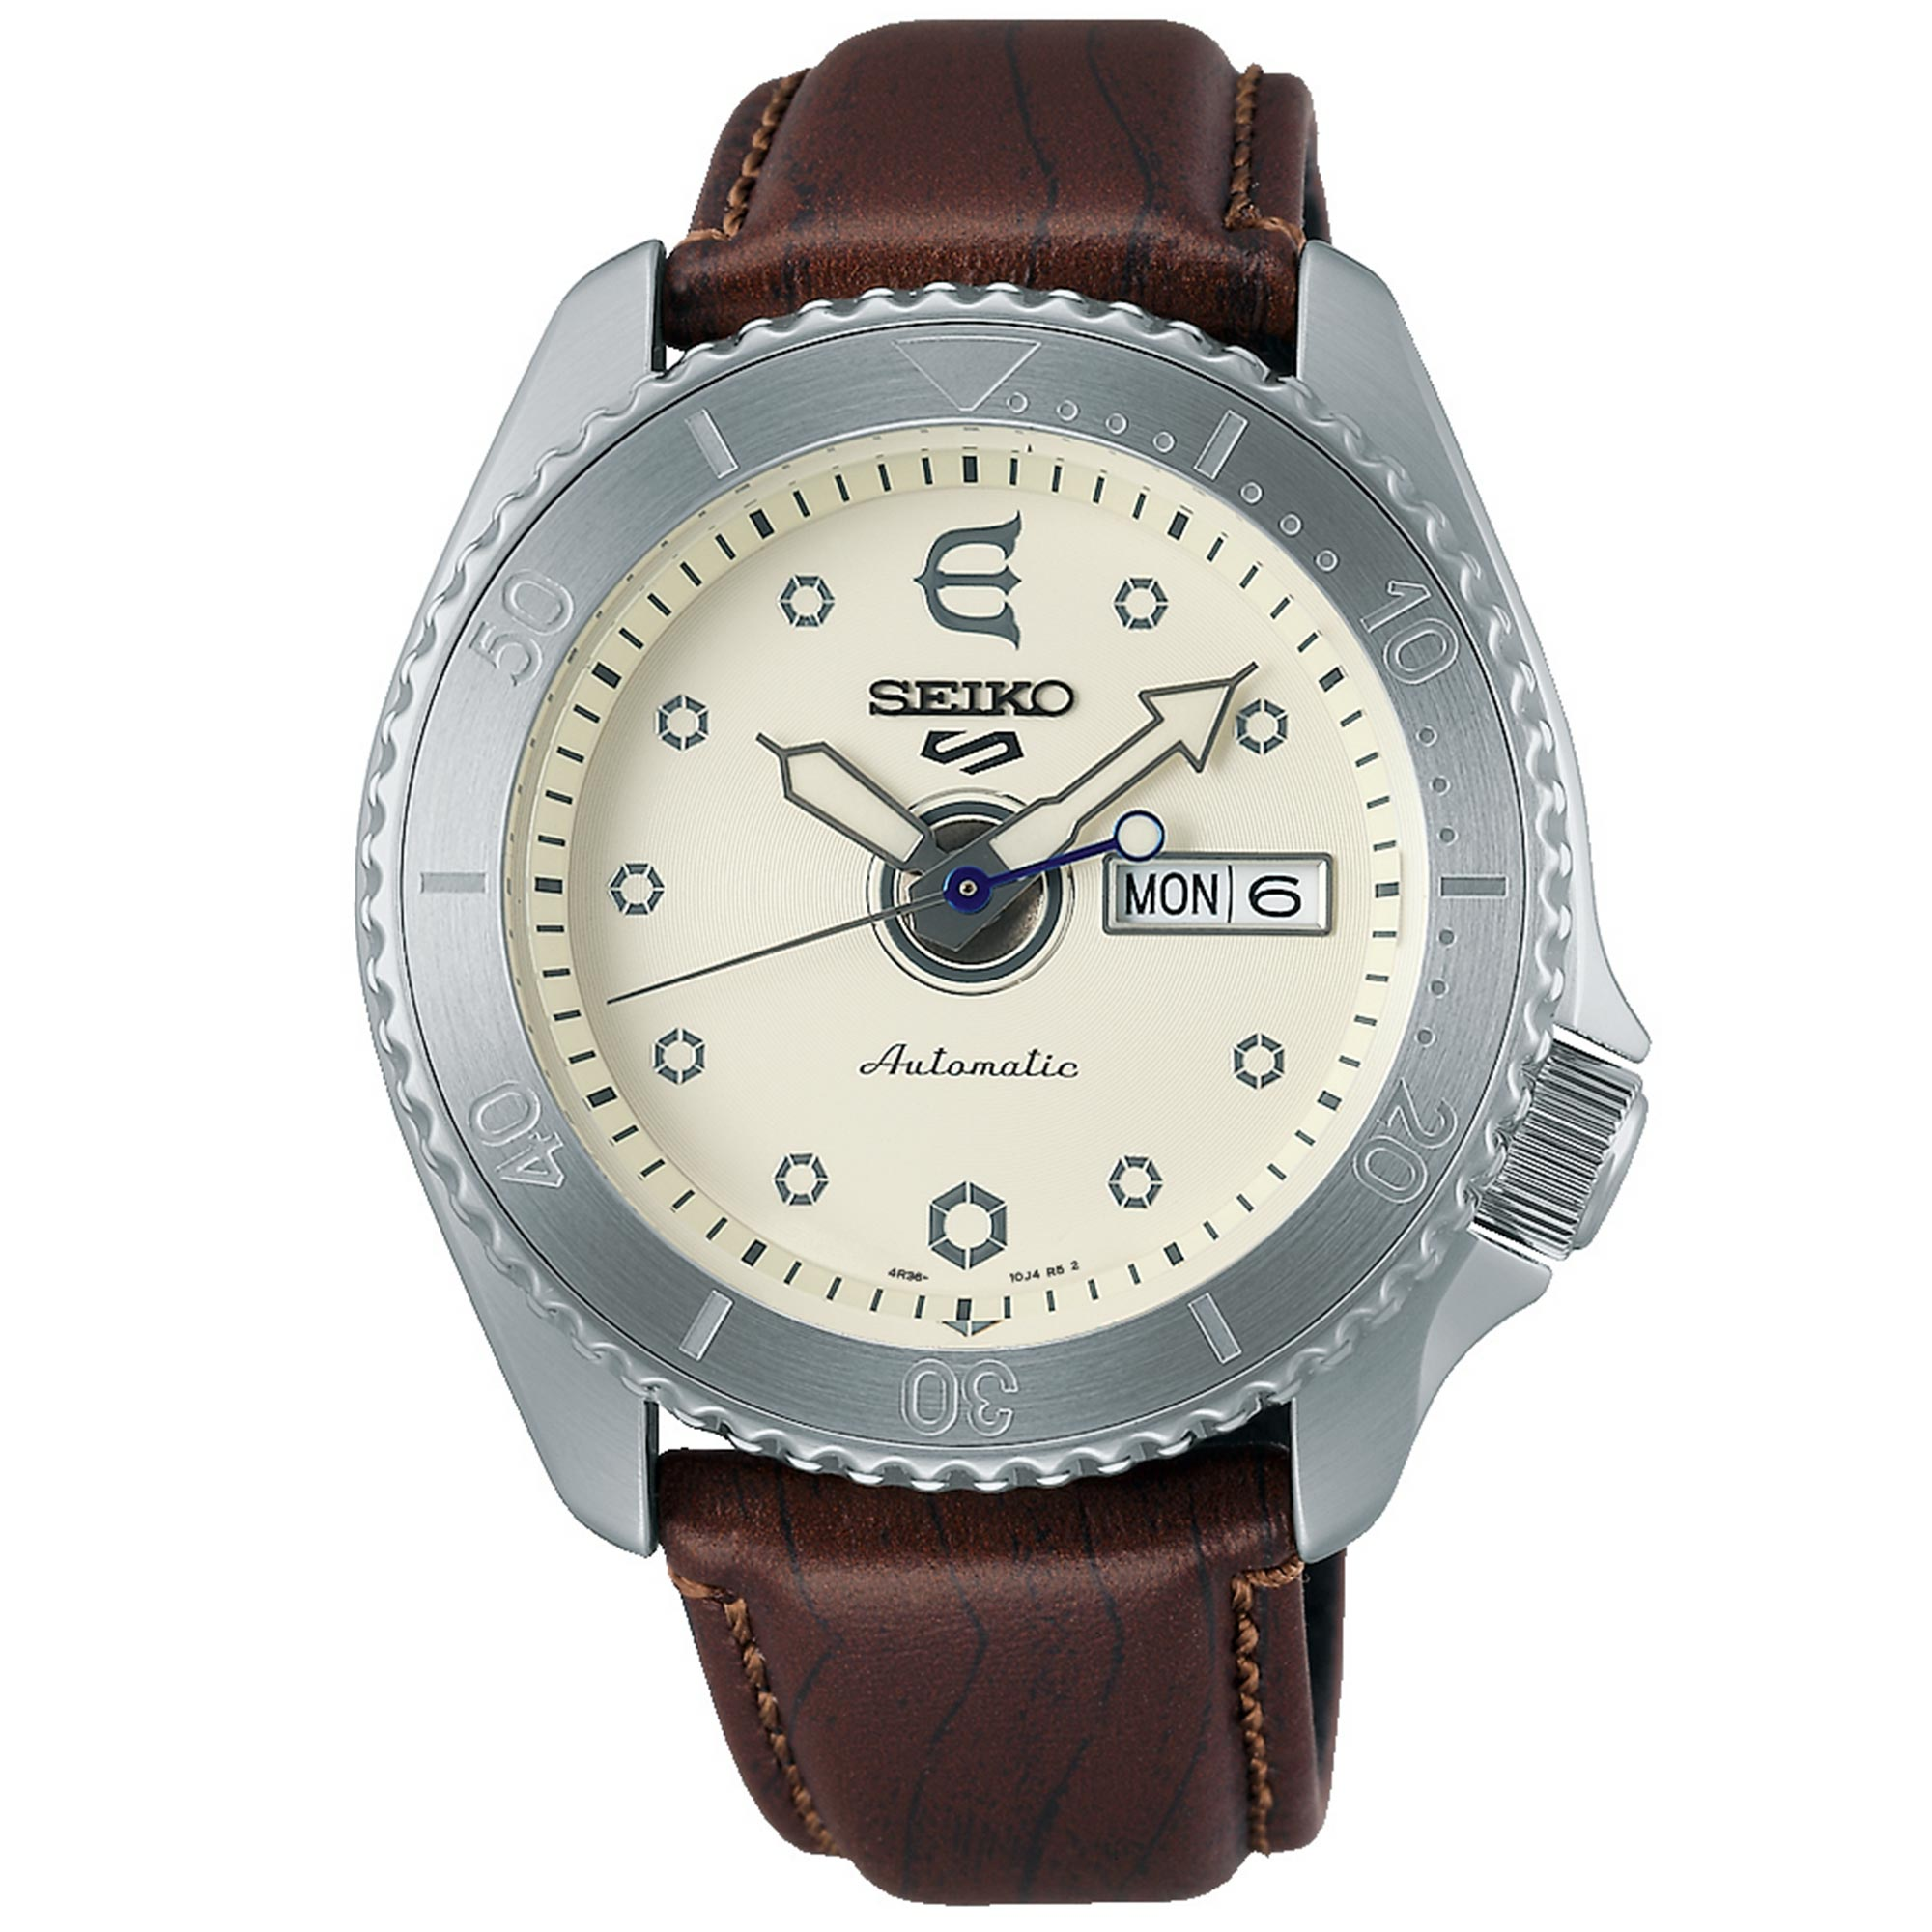 Seiko 5 Sports Evisen Skateboards Limited Edition Automatic Movement Stainless Steel Case Leather Strap SRPF93K1 Skateboard